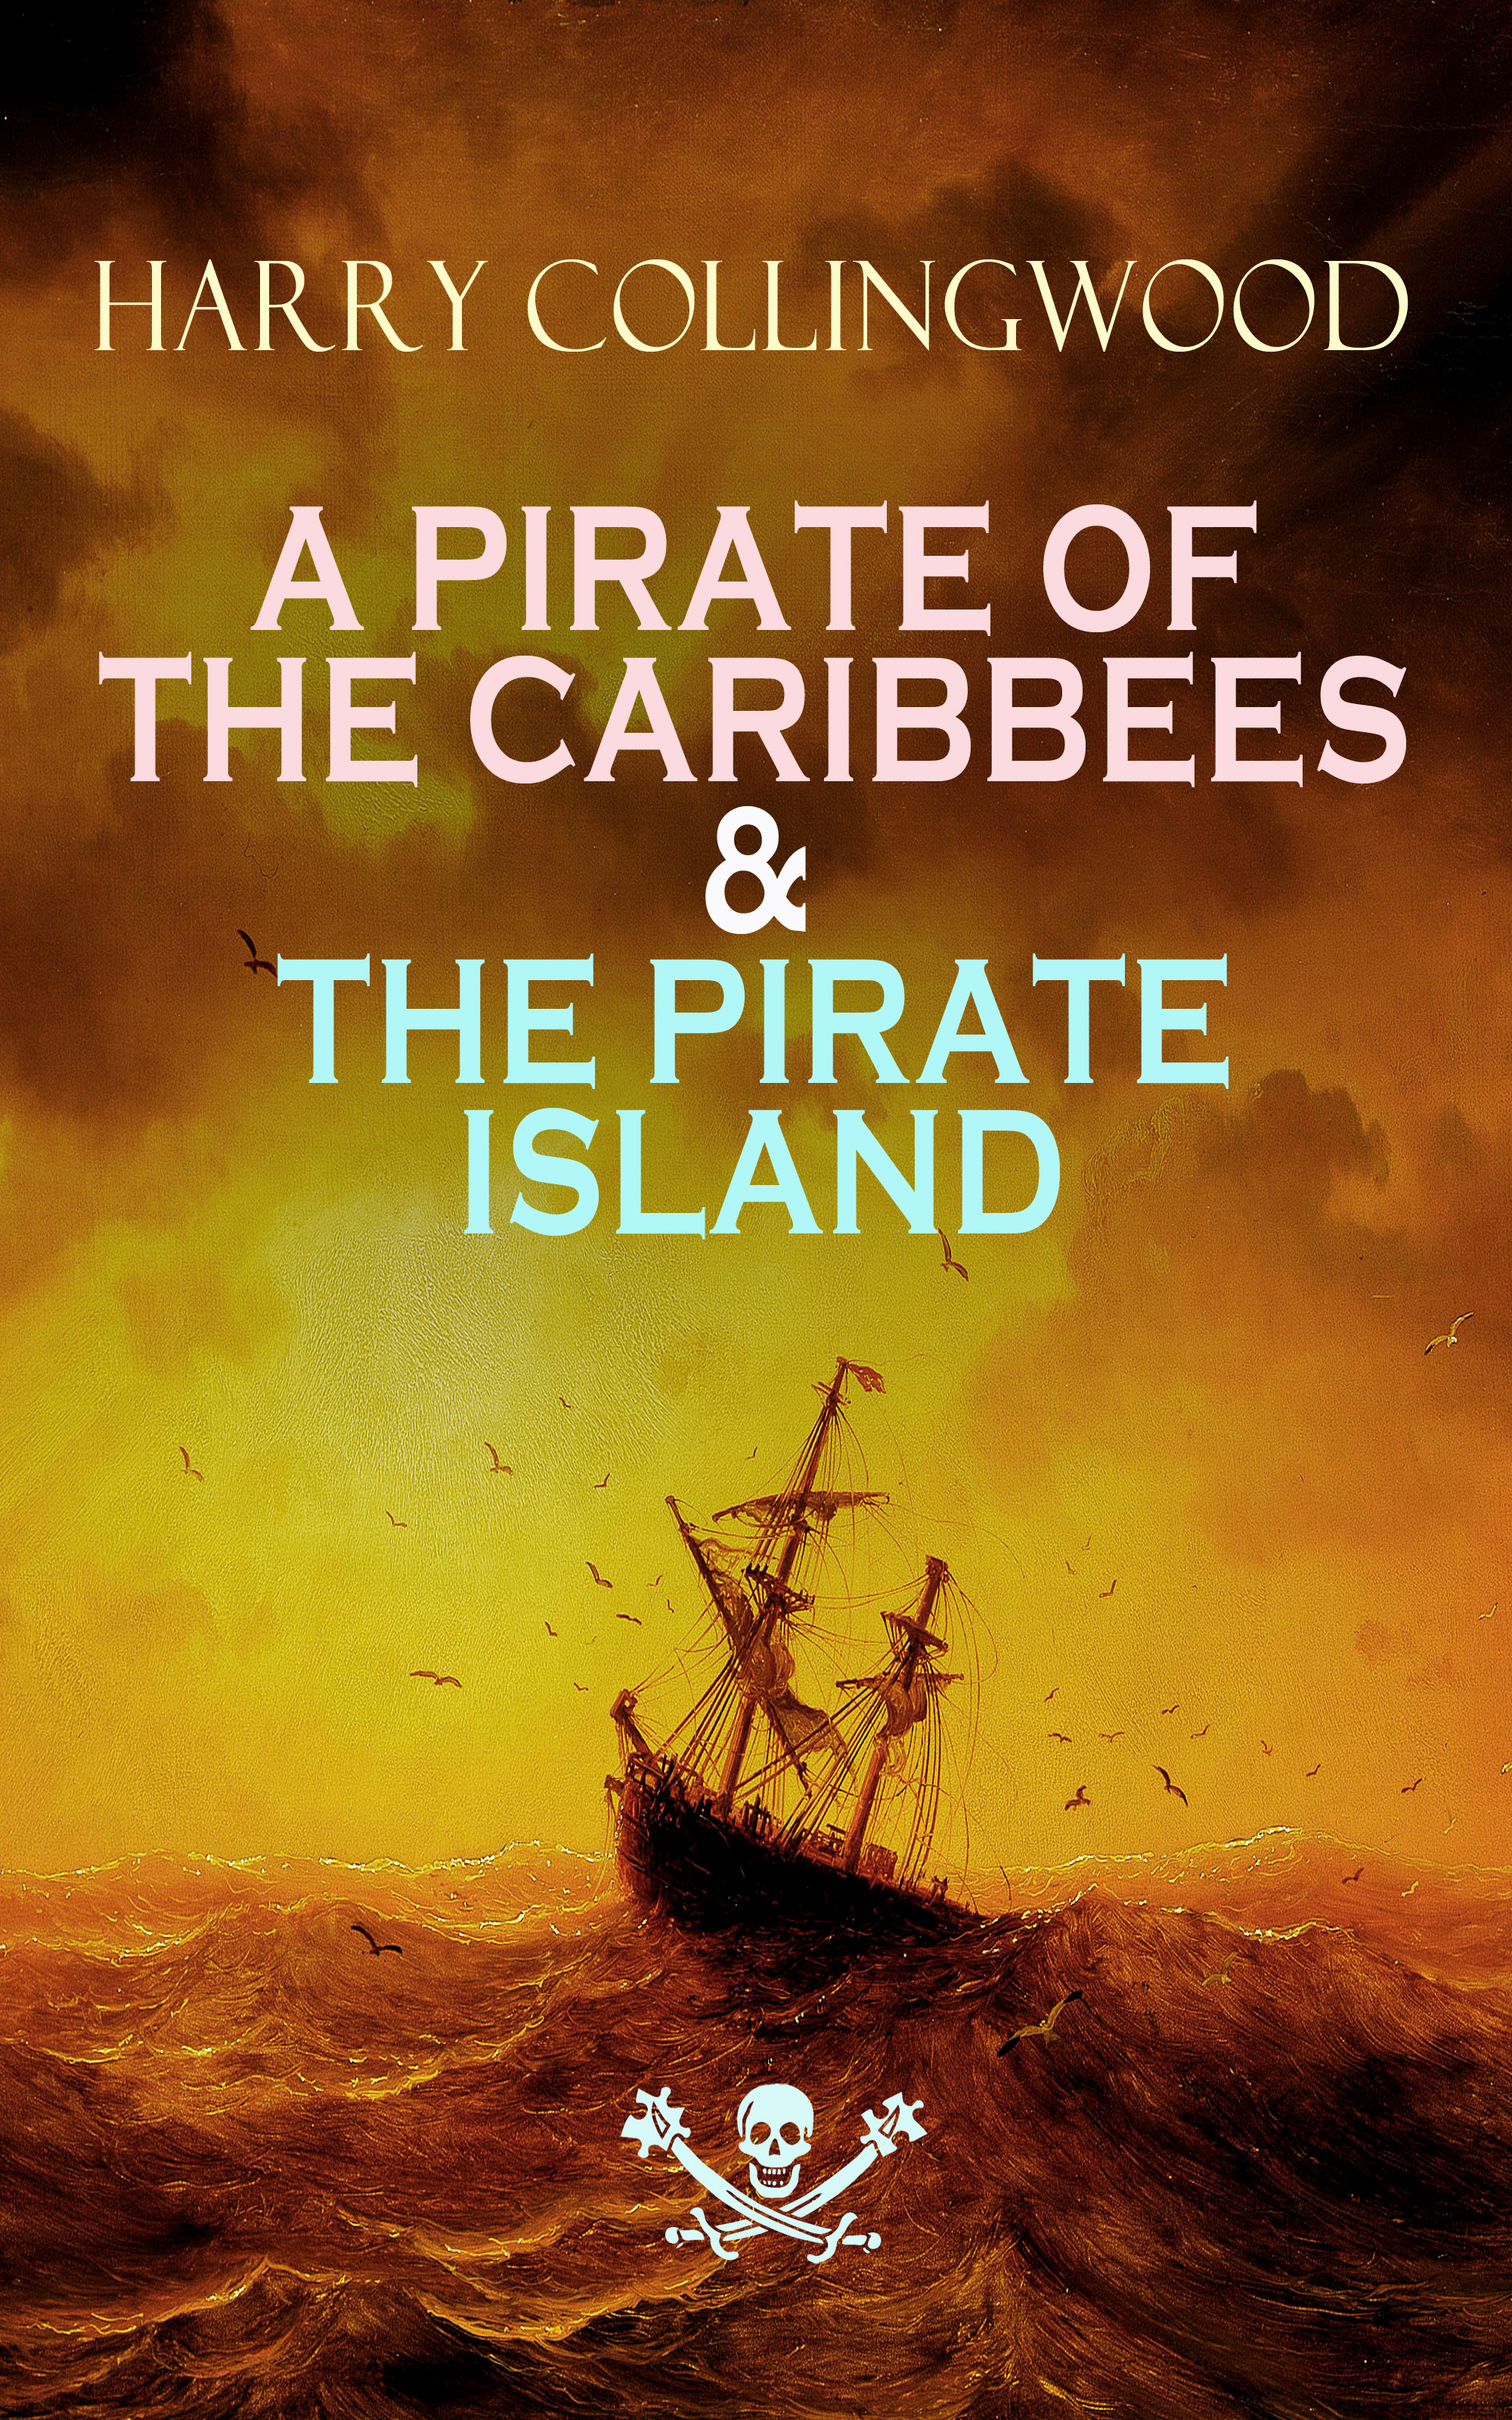 Harry Collingwood A PIRATE OF THE CARIBBEES & THE PIRATE ISLAND w scott the pirate